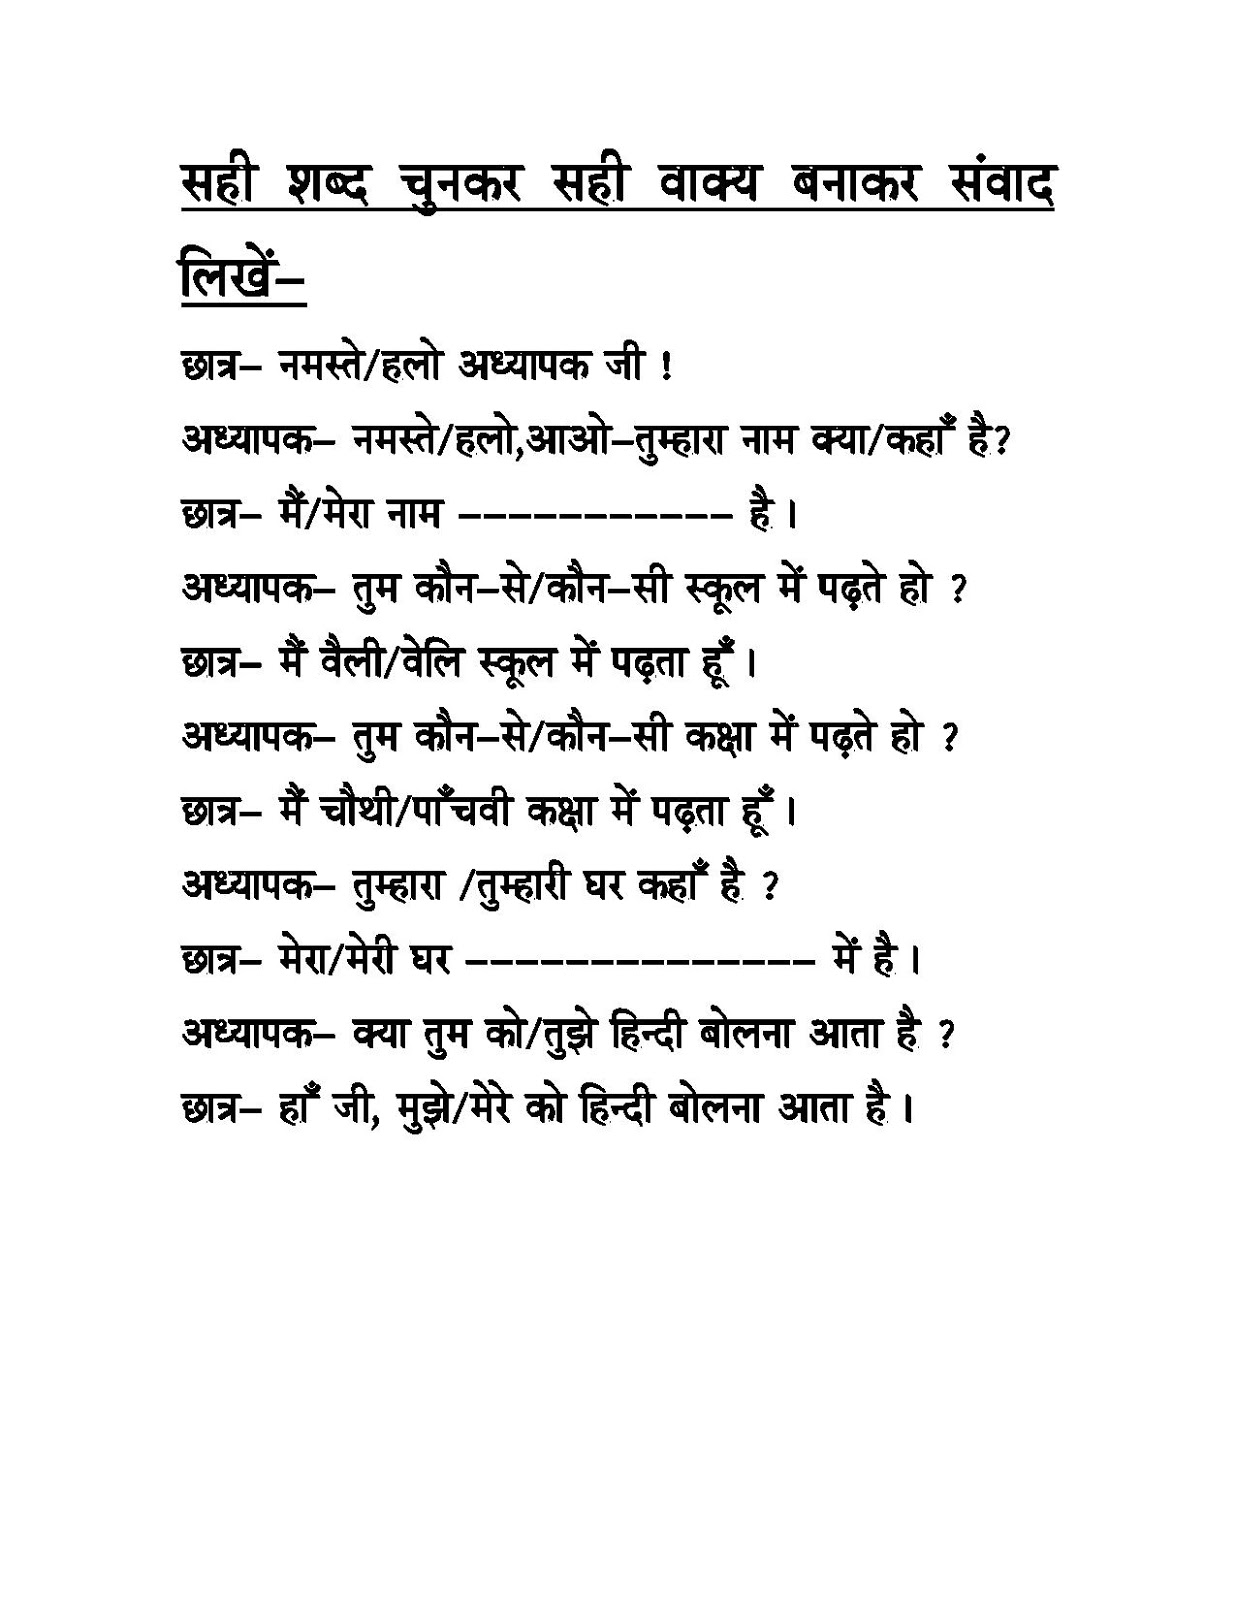 Hindi Grammar Work Sheet Collection For Classes 5 6 7 Amp 8 Types Of Sentences Work Sheets For